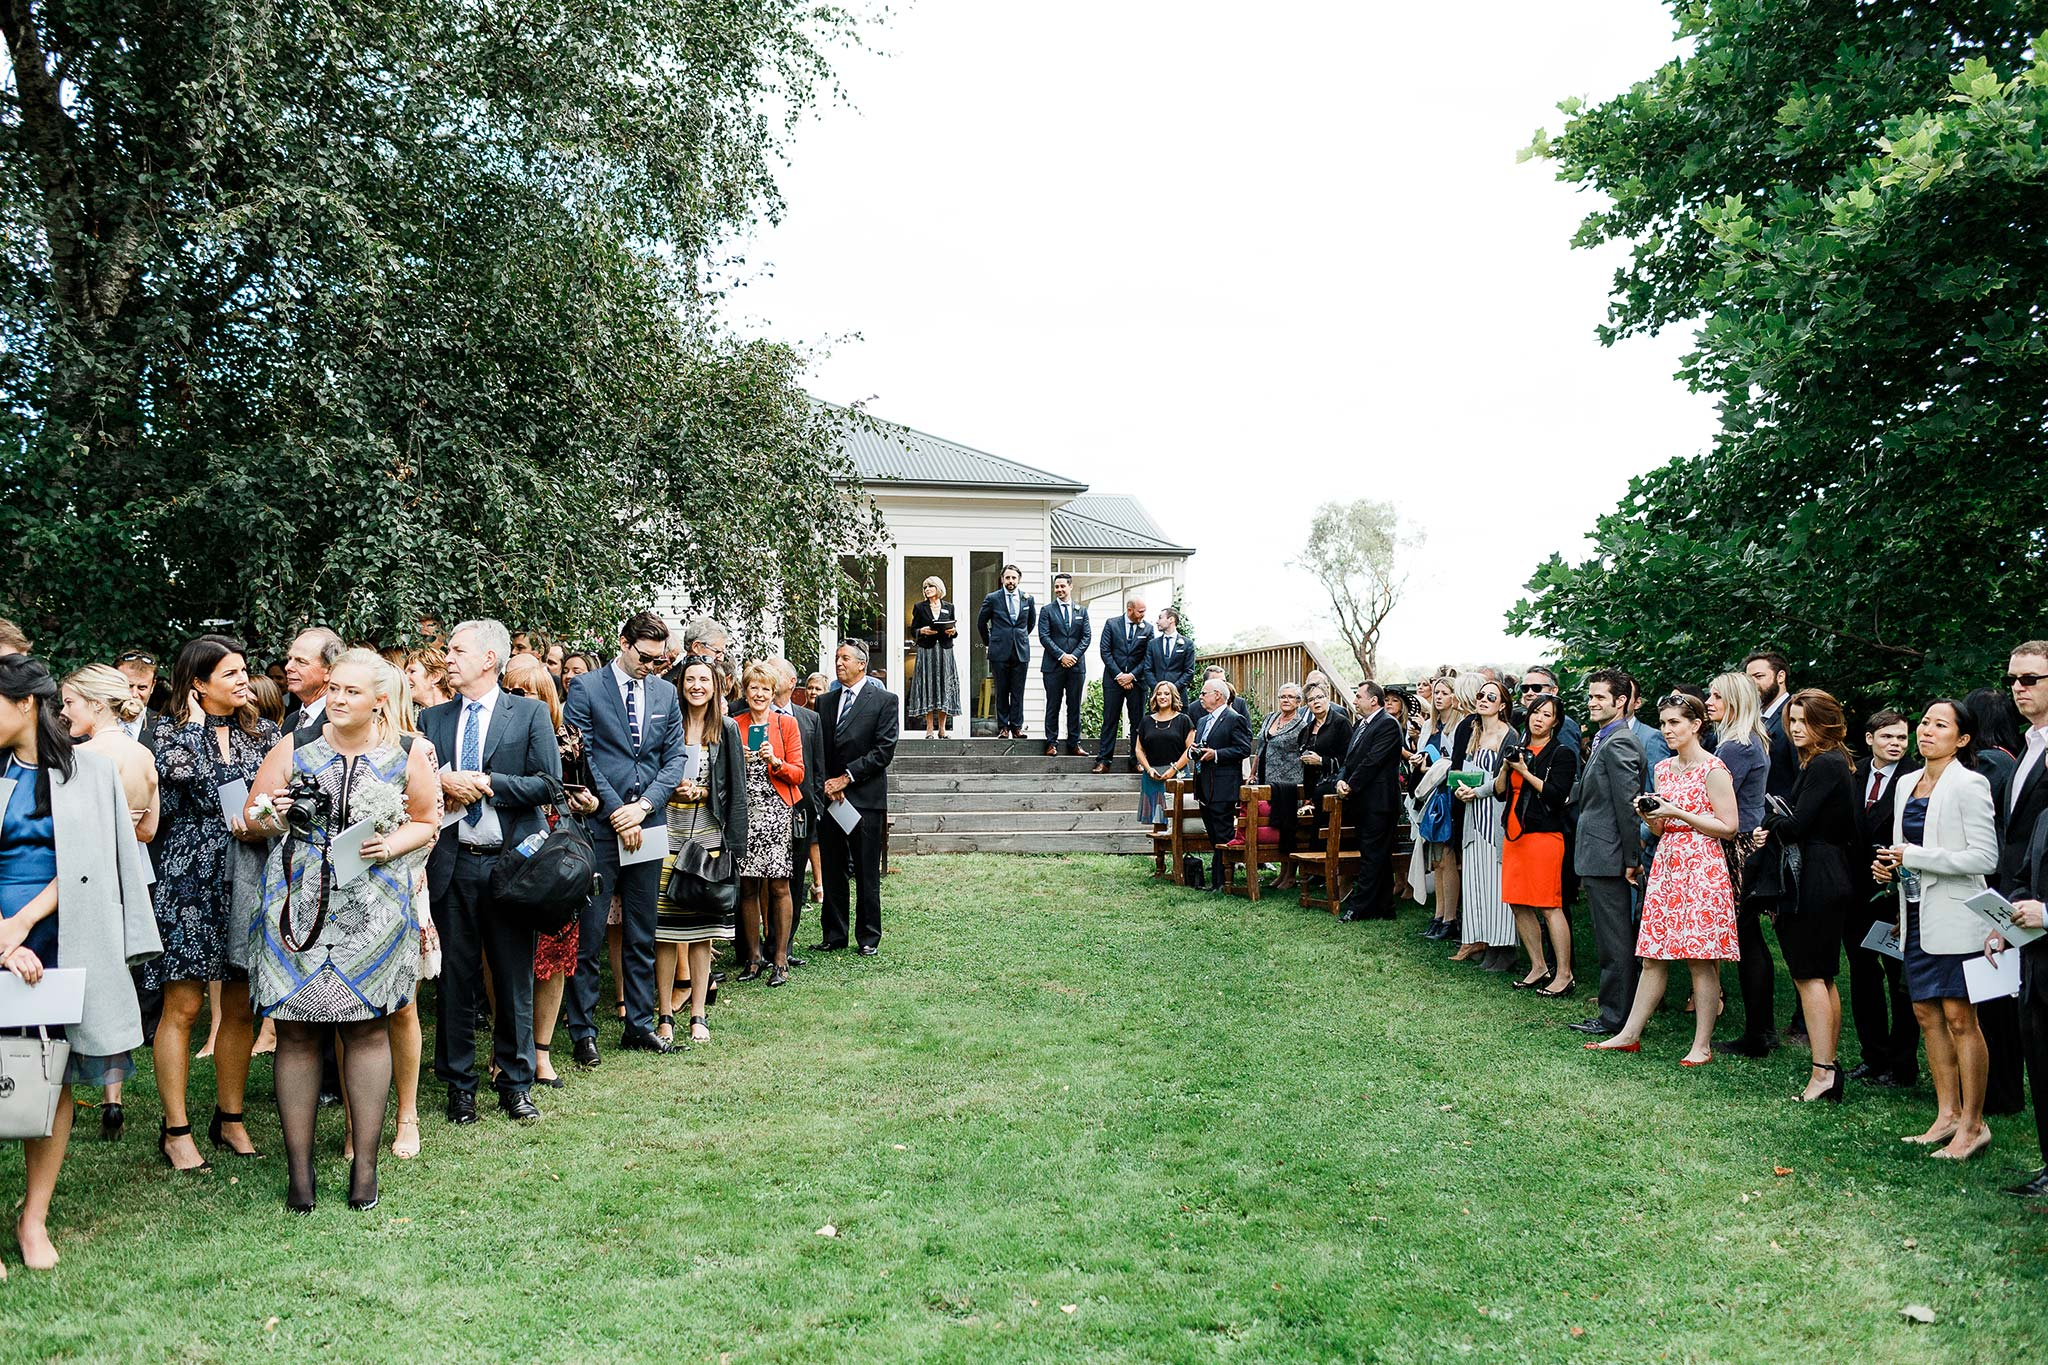 Tasmania-Davenport-Farm-Wedding-ceremony